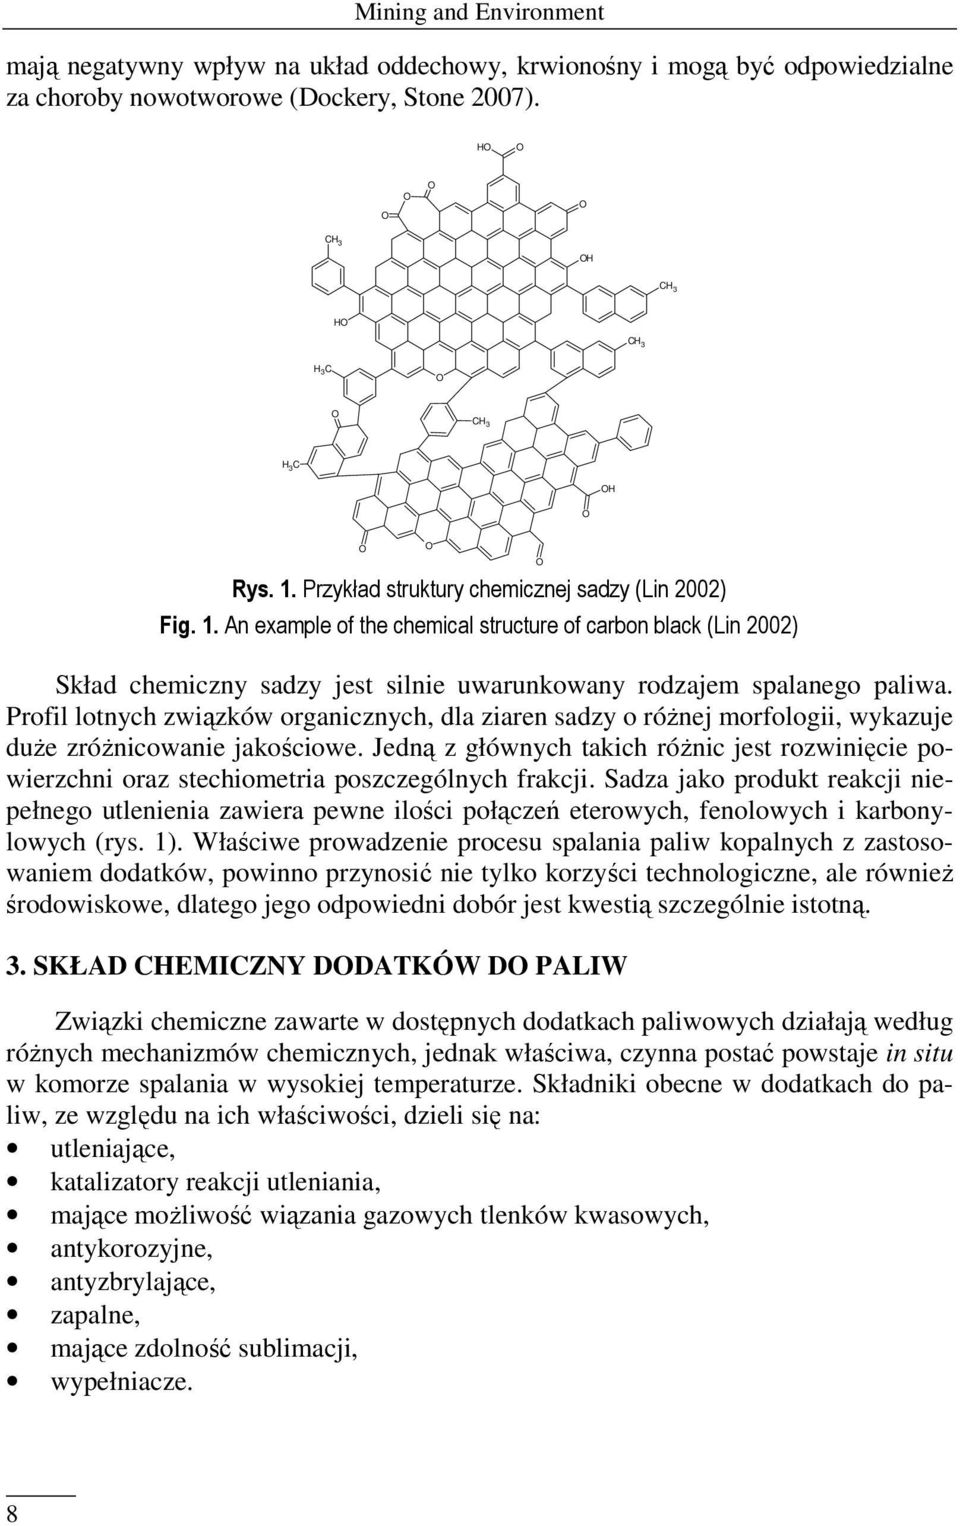 Przykład struktury chemicznej sadzy (Lin 2002) Fig. 1. An example of the chemical structure of carbon black (Lin 2002) Skład chemiczny sadzy jest silnie uwarunkowany rodzajem spalanego paliwa.